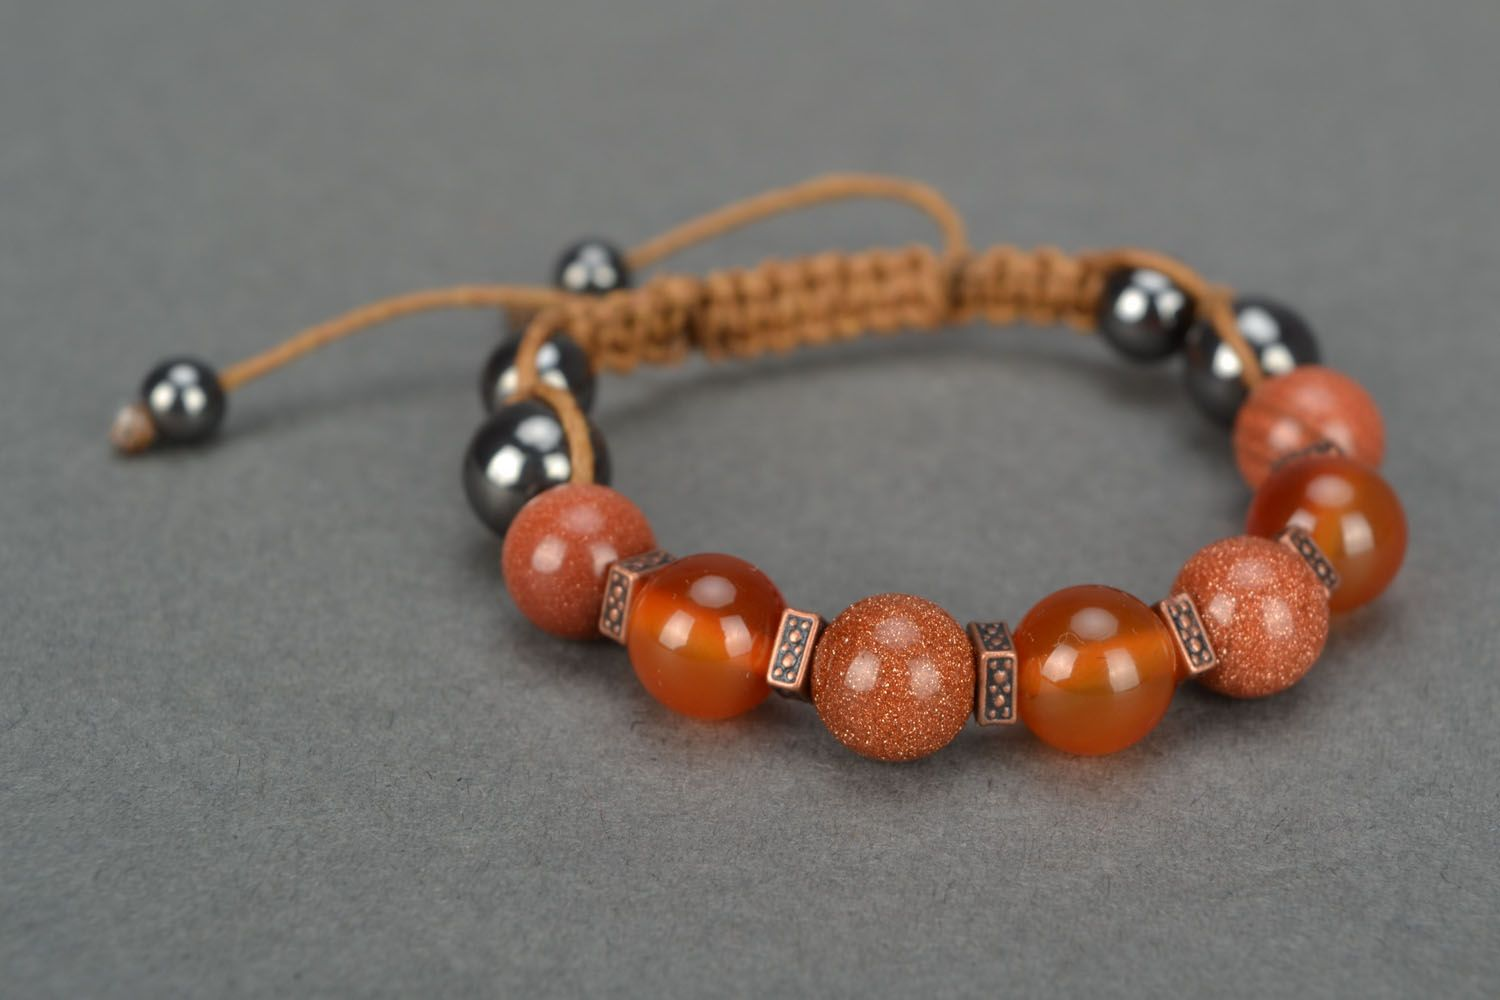 Wrist bracelet with natural stones photo 3